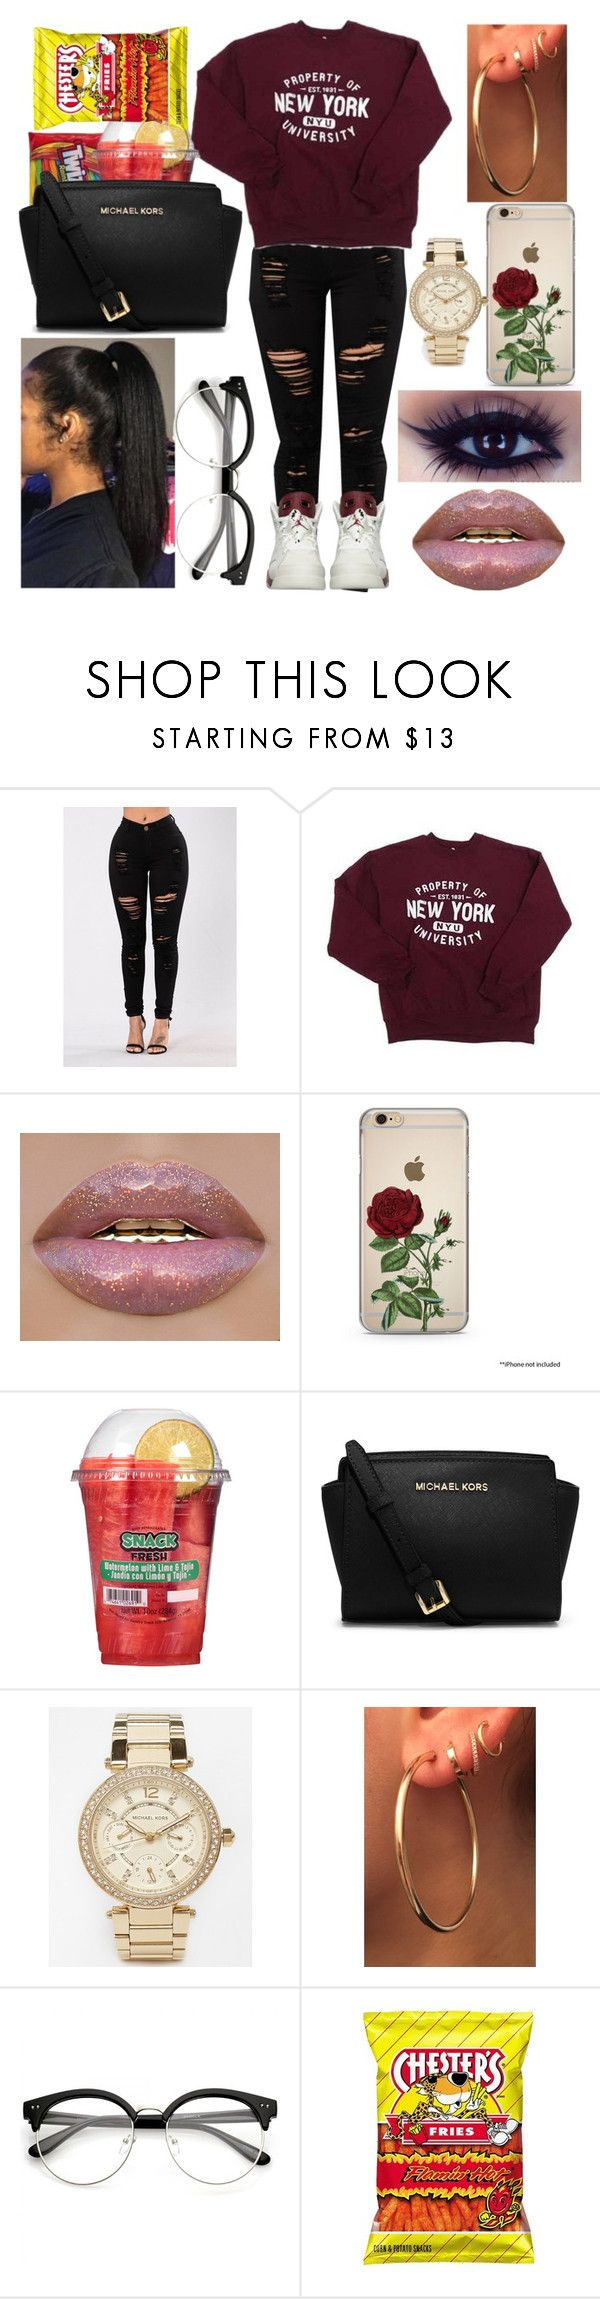 """Untitled #477"" by xgrunge-princessx ❤ liked on Polyvore featuring NIKE, MICHAEL Michael Kors and Michael Kors"